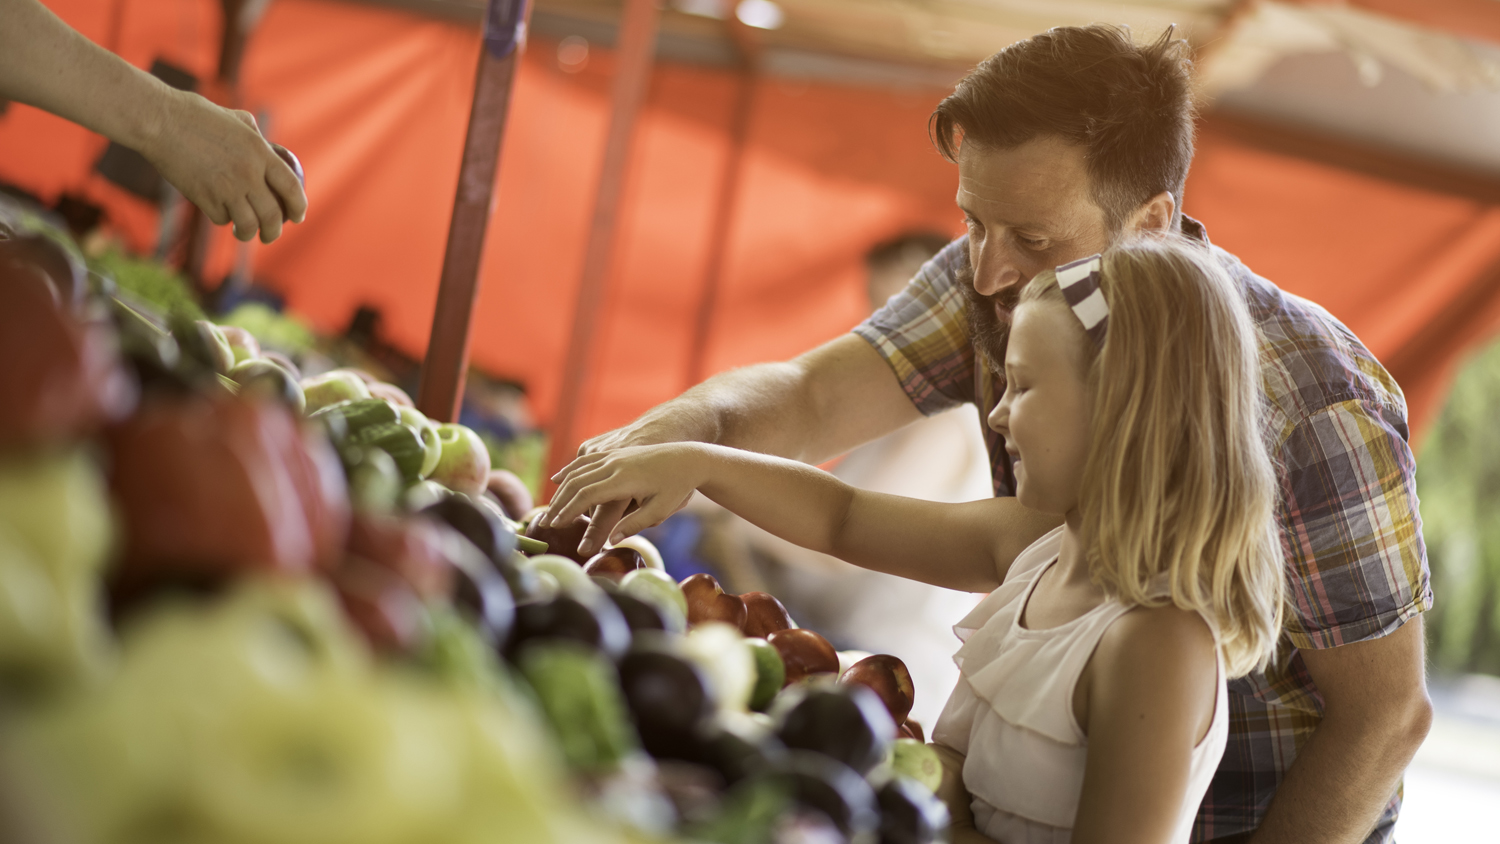 Smiling bearded man and his daughter buying fresh produce at outdoor farmers market stand.